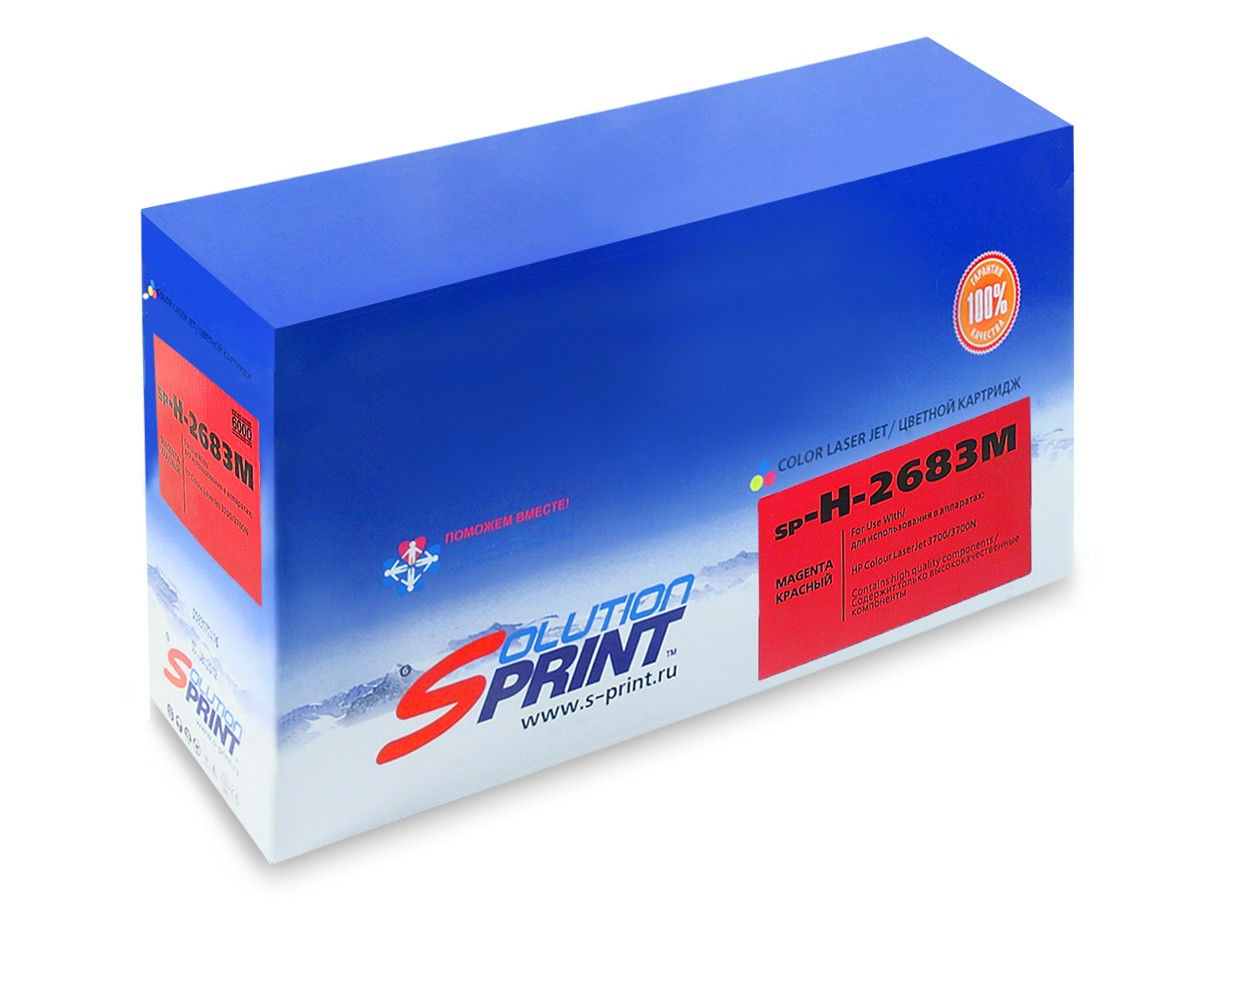 Картридж лазерный SolutionPrint SP-H-2683M (6000 коп.; HP Color LaserJet 3700; красный)